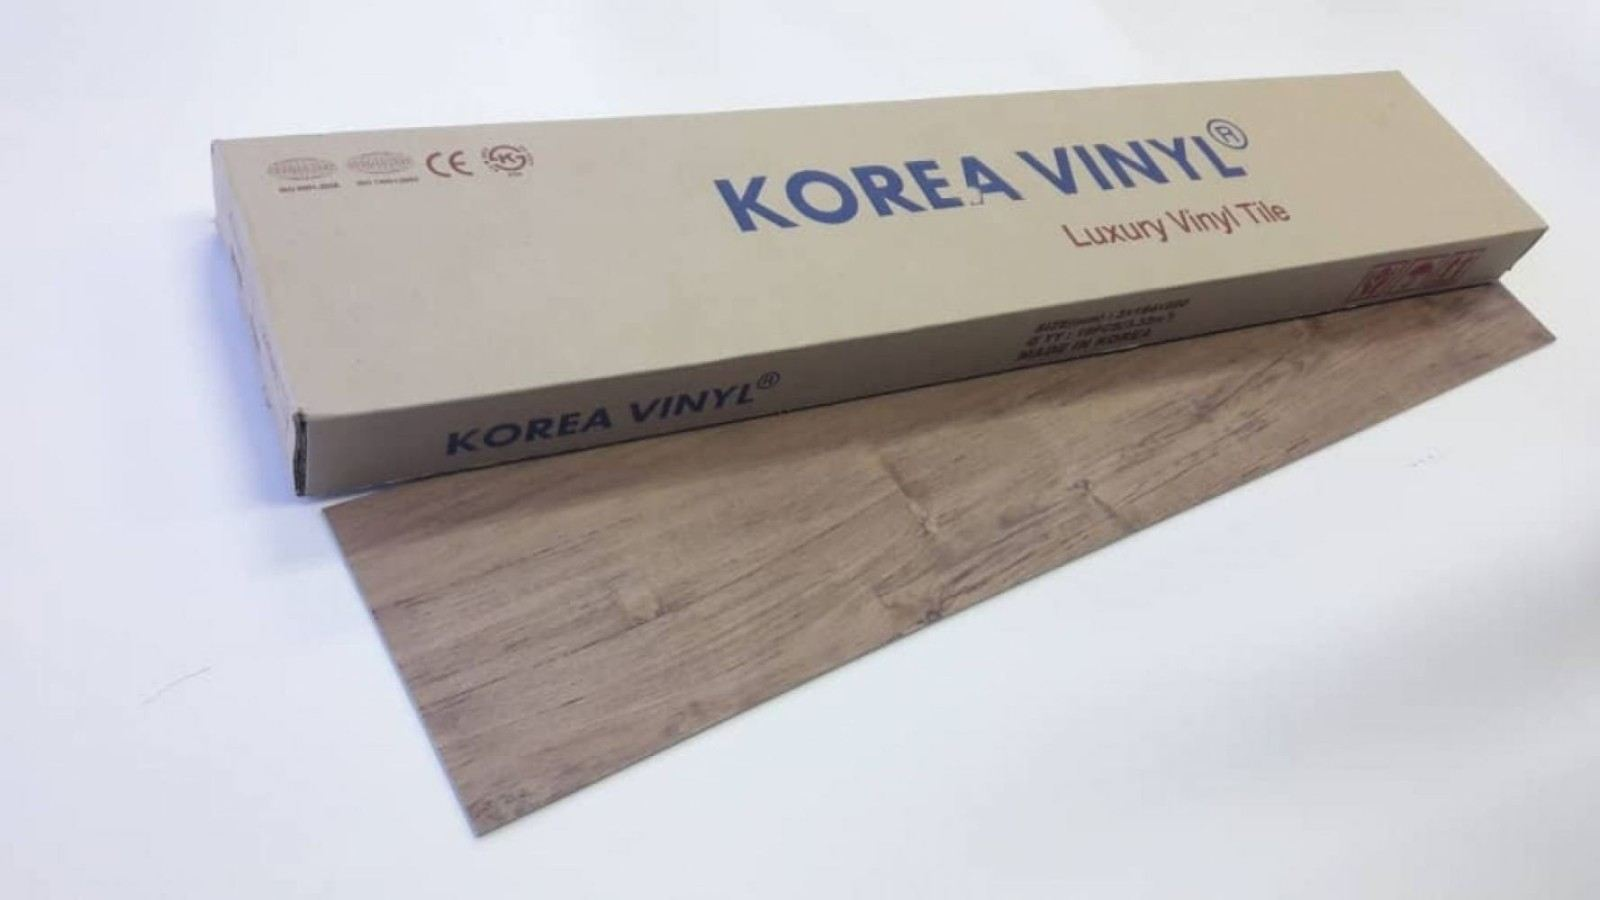 (KV-1905) Korea Luxury Vinyl Flooring 3mm - Nougat Cypress